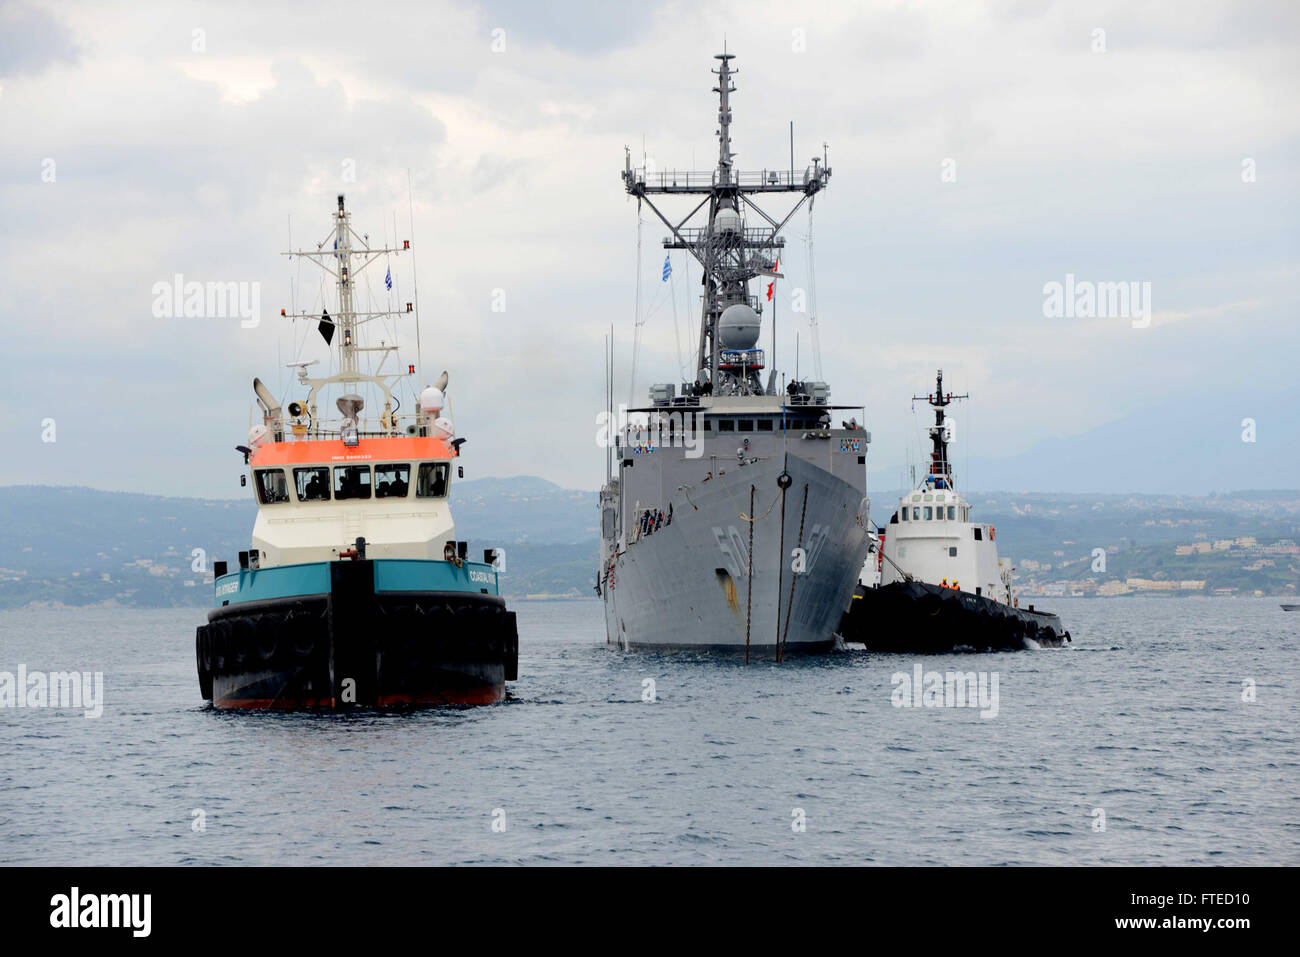 SOUDA BAY, Greece (March 12, 2014) - The guided missile frigate USS Taylor (FFG 50) arrives at Marathi NATO pier - Stock Image